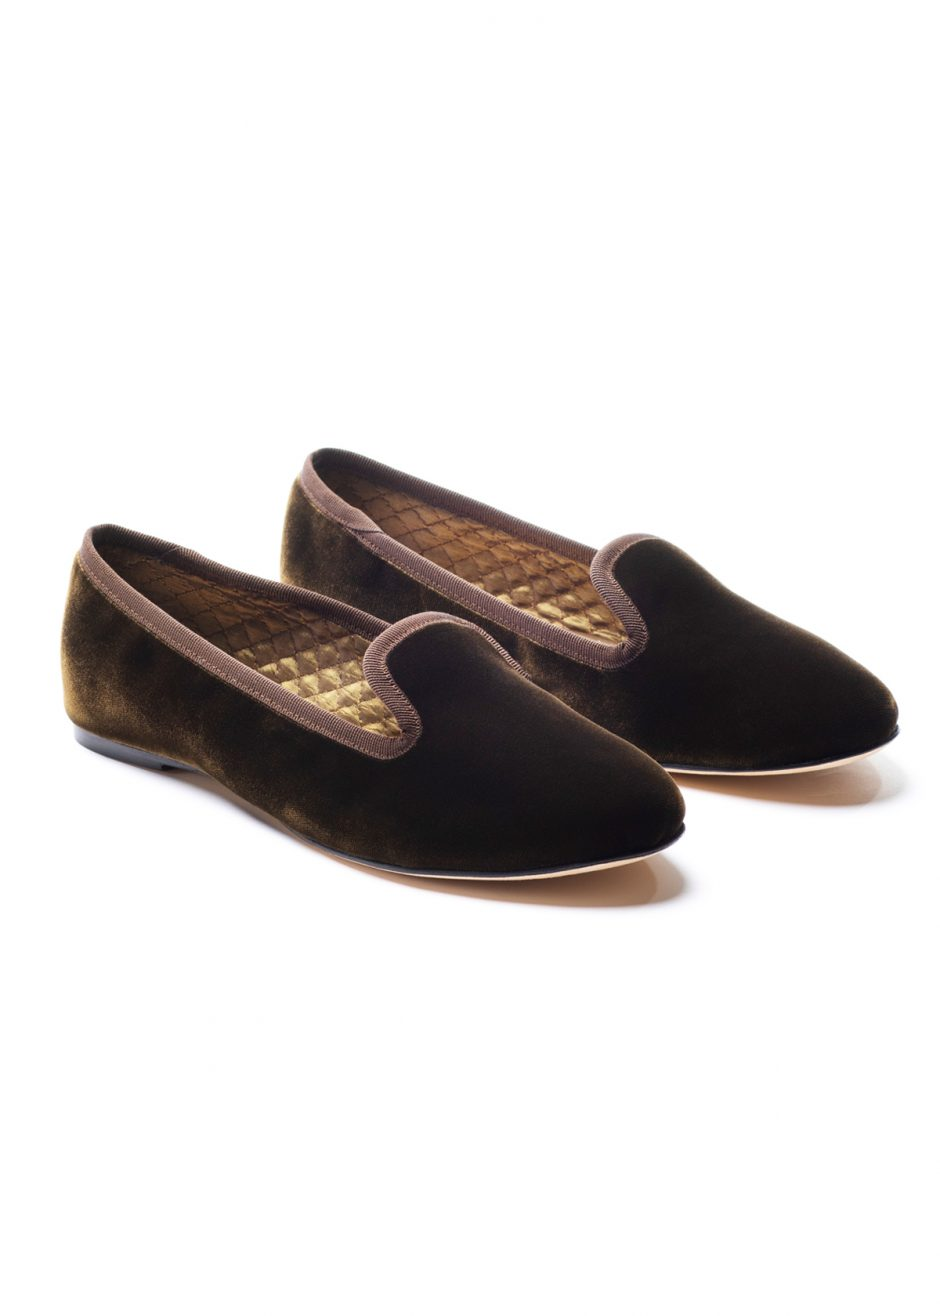 Casanova – Slipper brown velvet